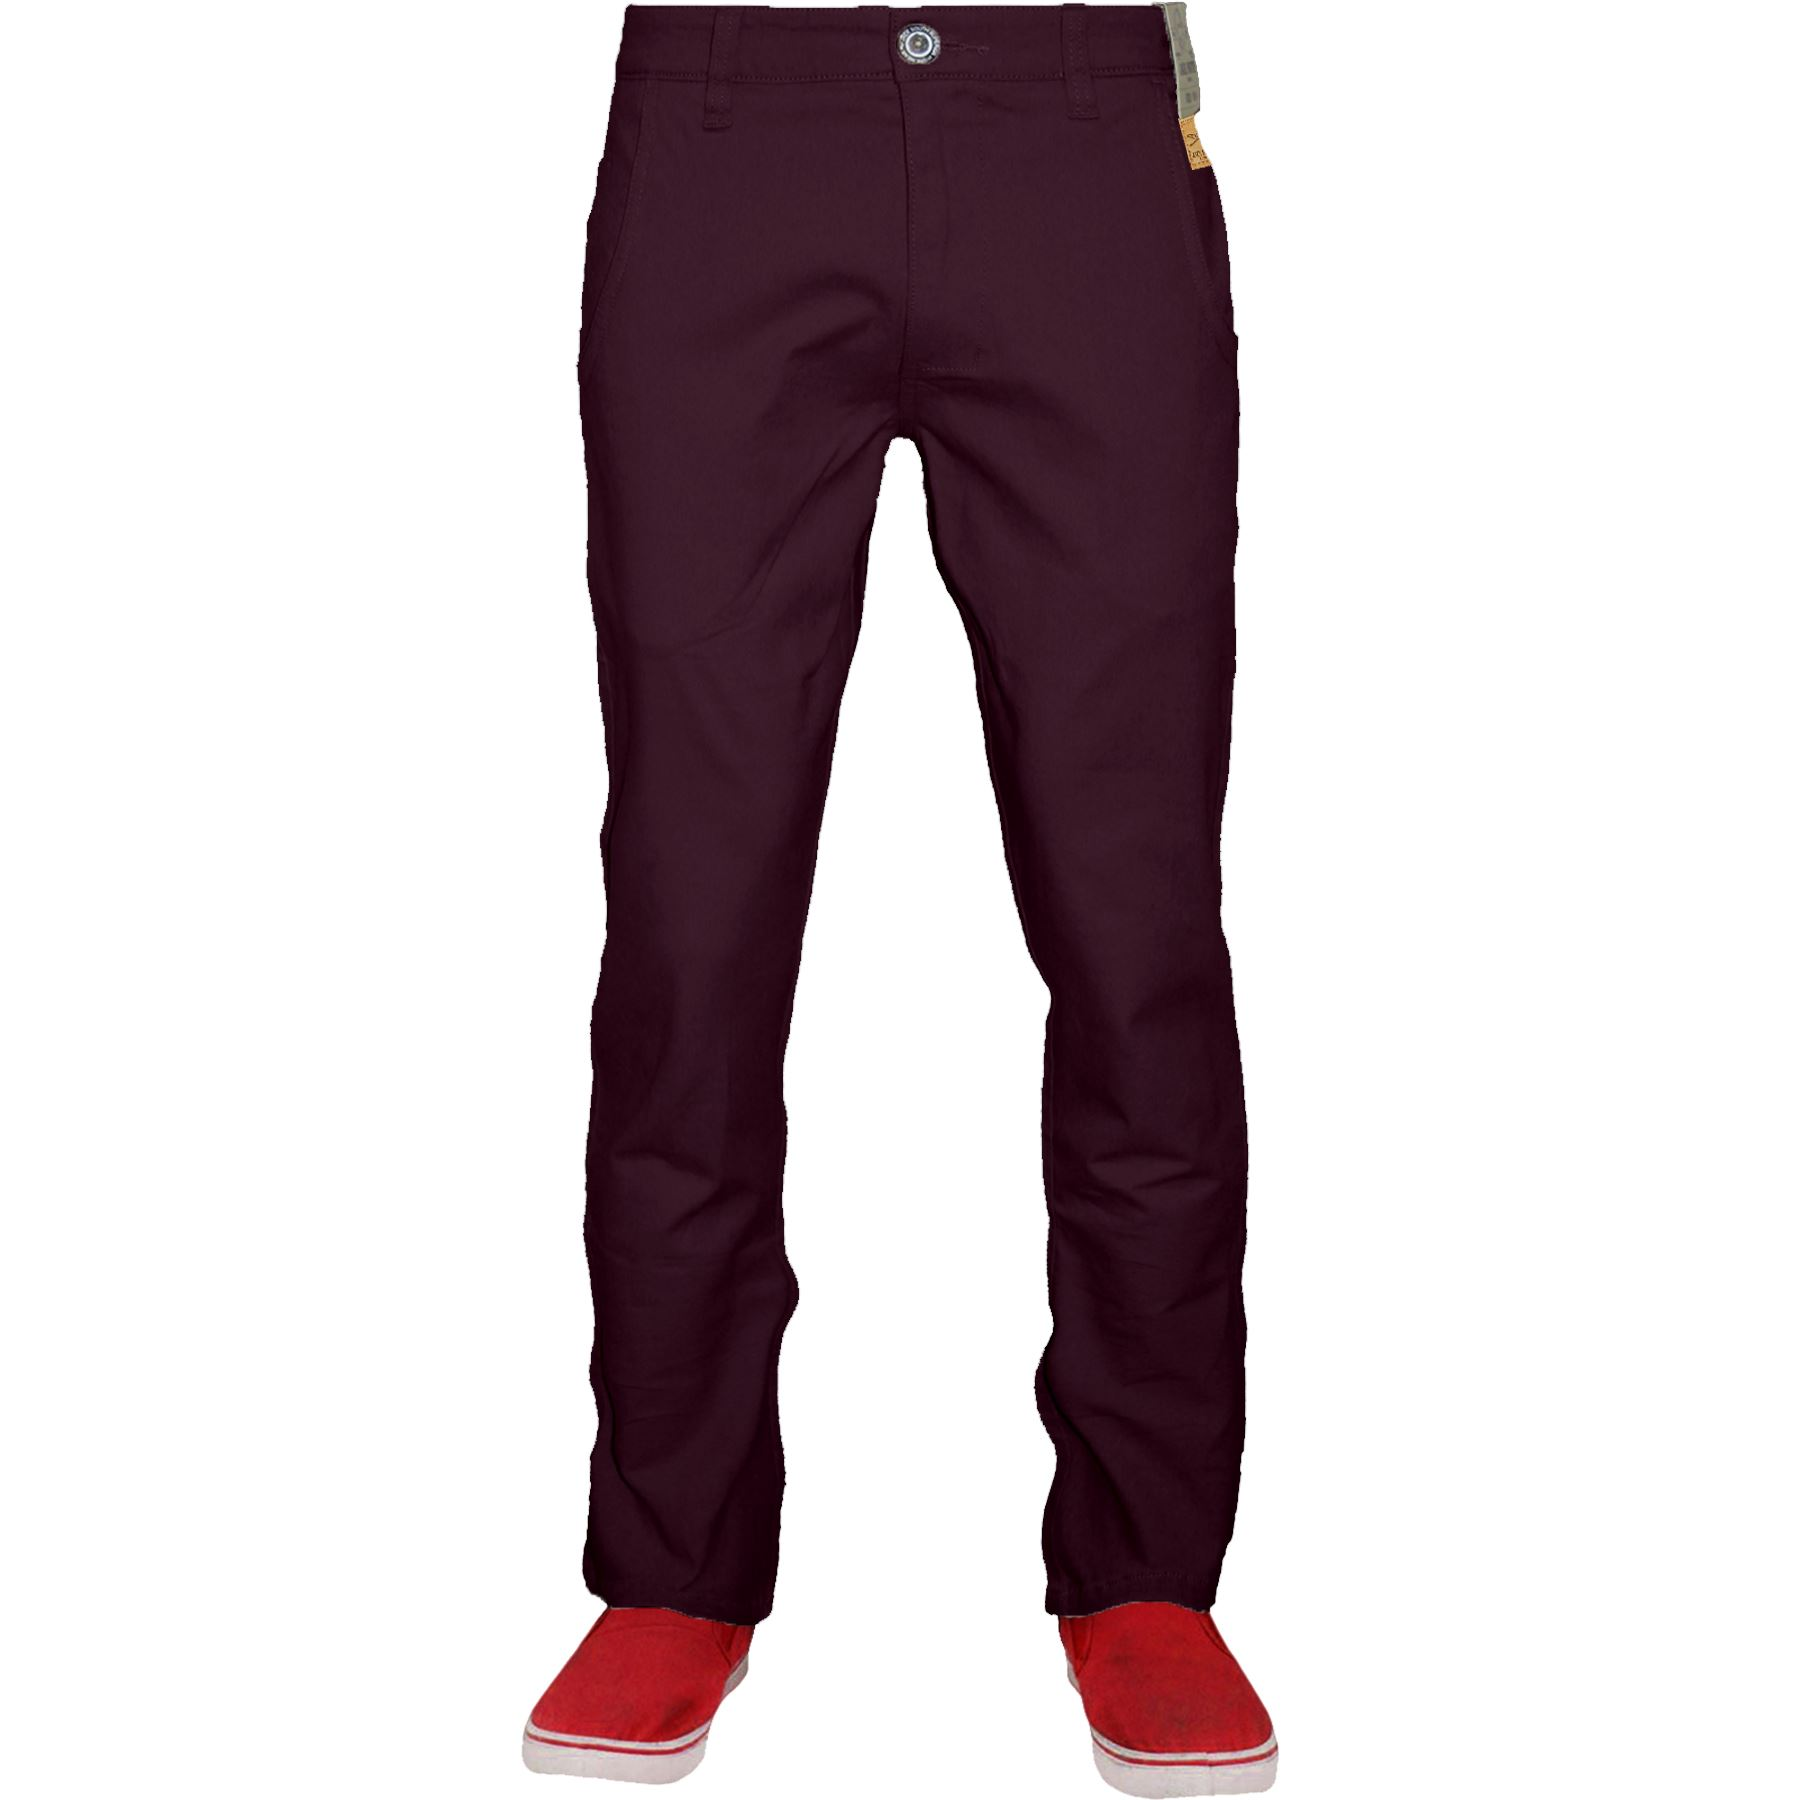 Mens-Chino-Classic-Regular-Fit-Trouser-Casual-Stretch-Spandex-Pants-Size-32-40 thumbnail 17